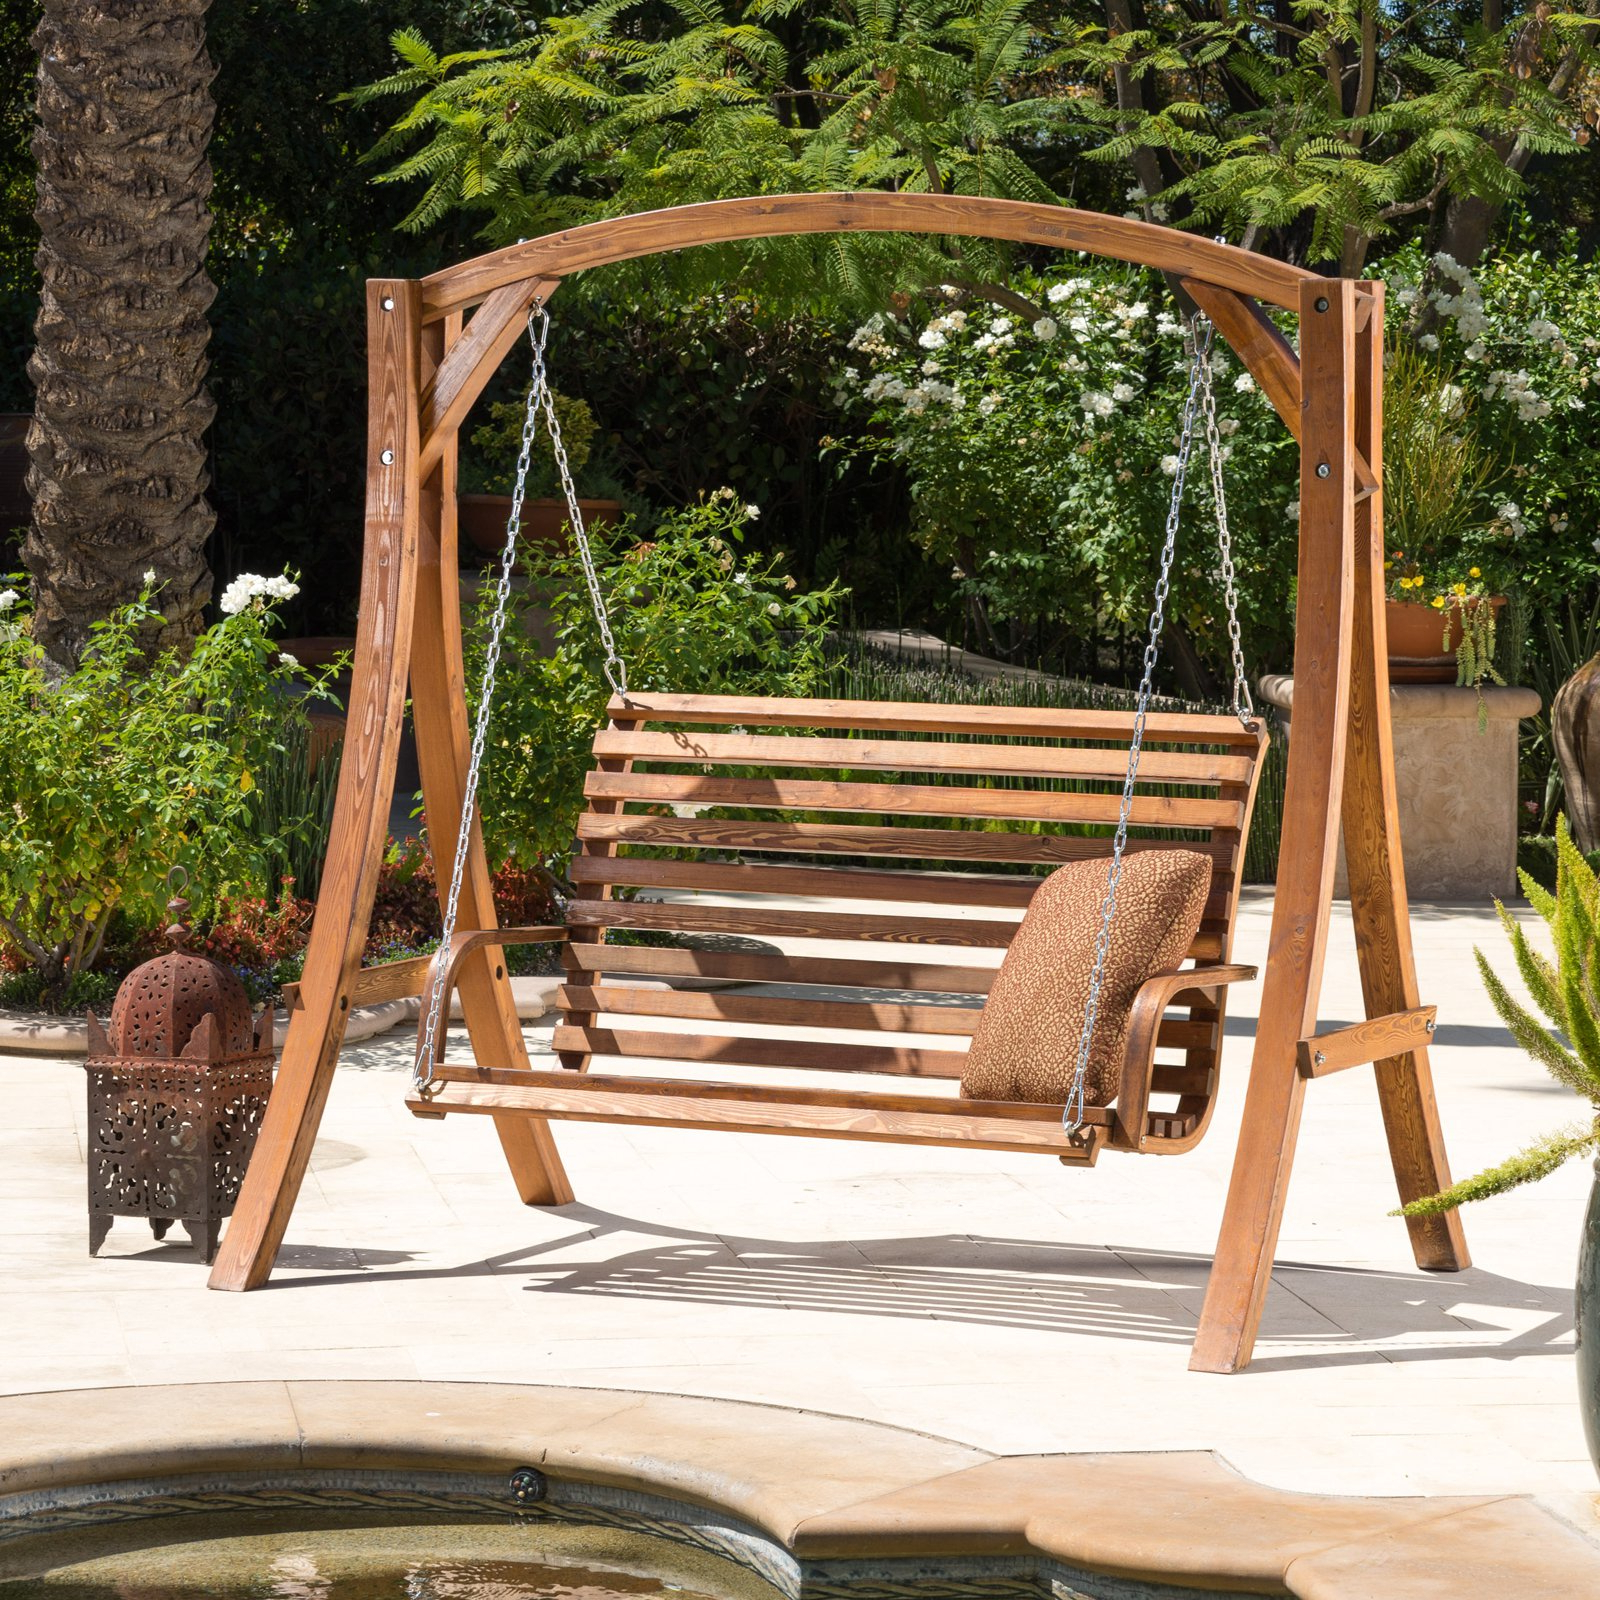 Weyburn Wood Porch Swing – Walmart In Well Known 3 Person Light Teak Oil Wood Outdoor Swings (View 30 of 30)